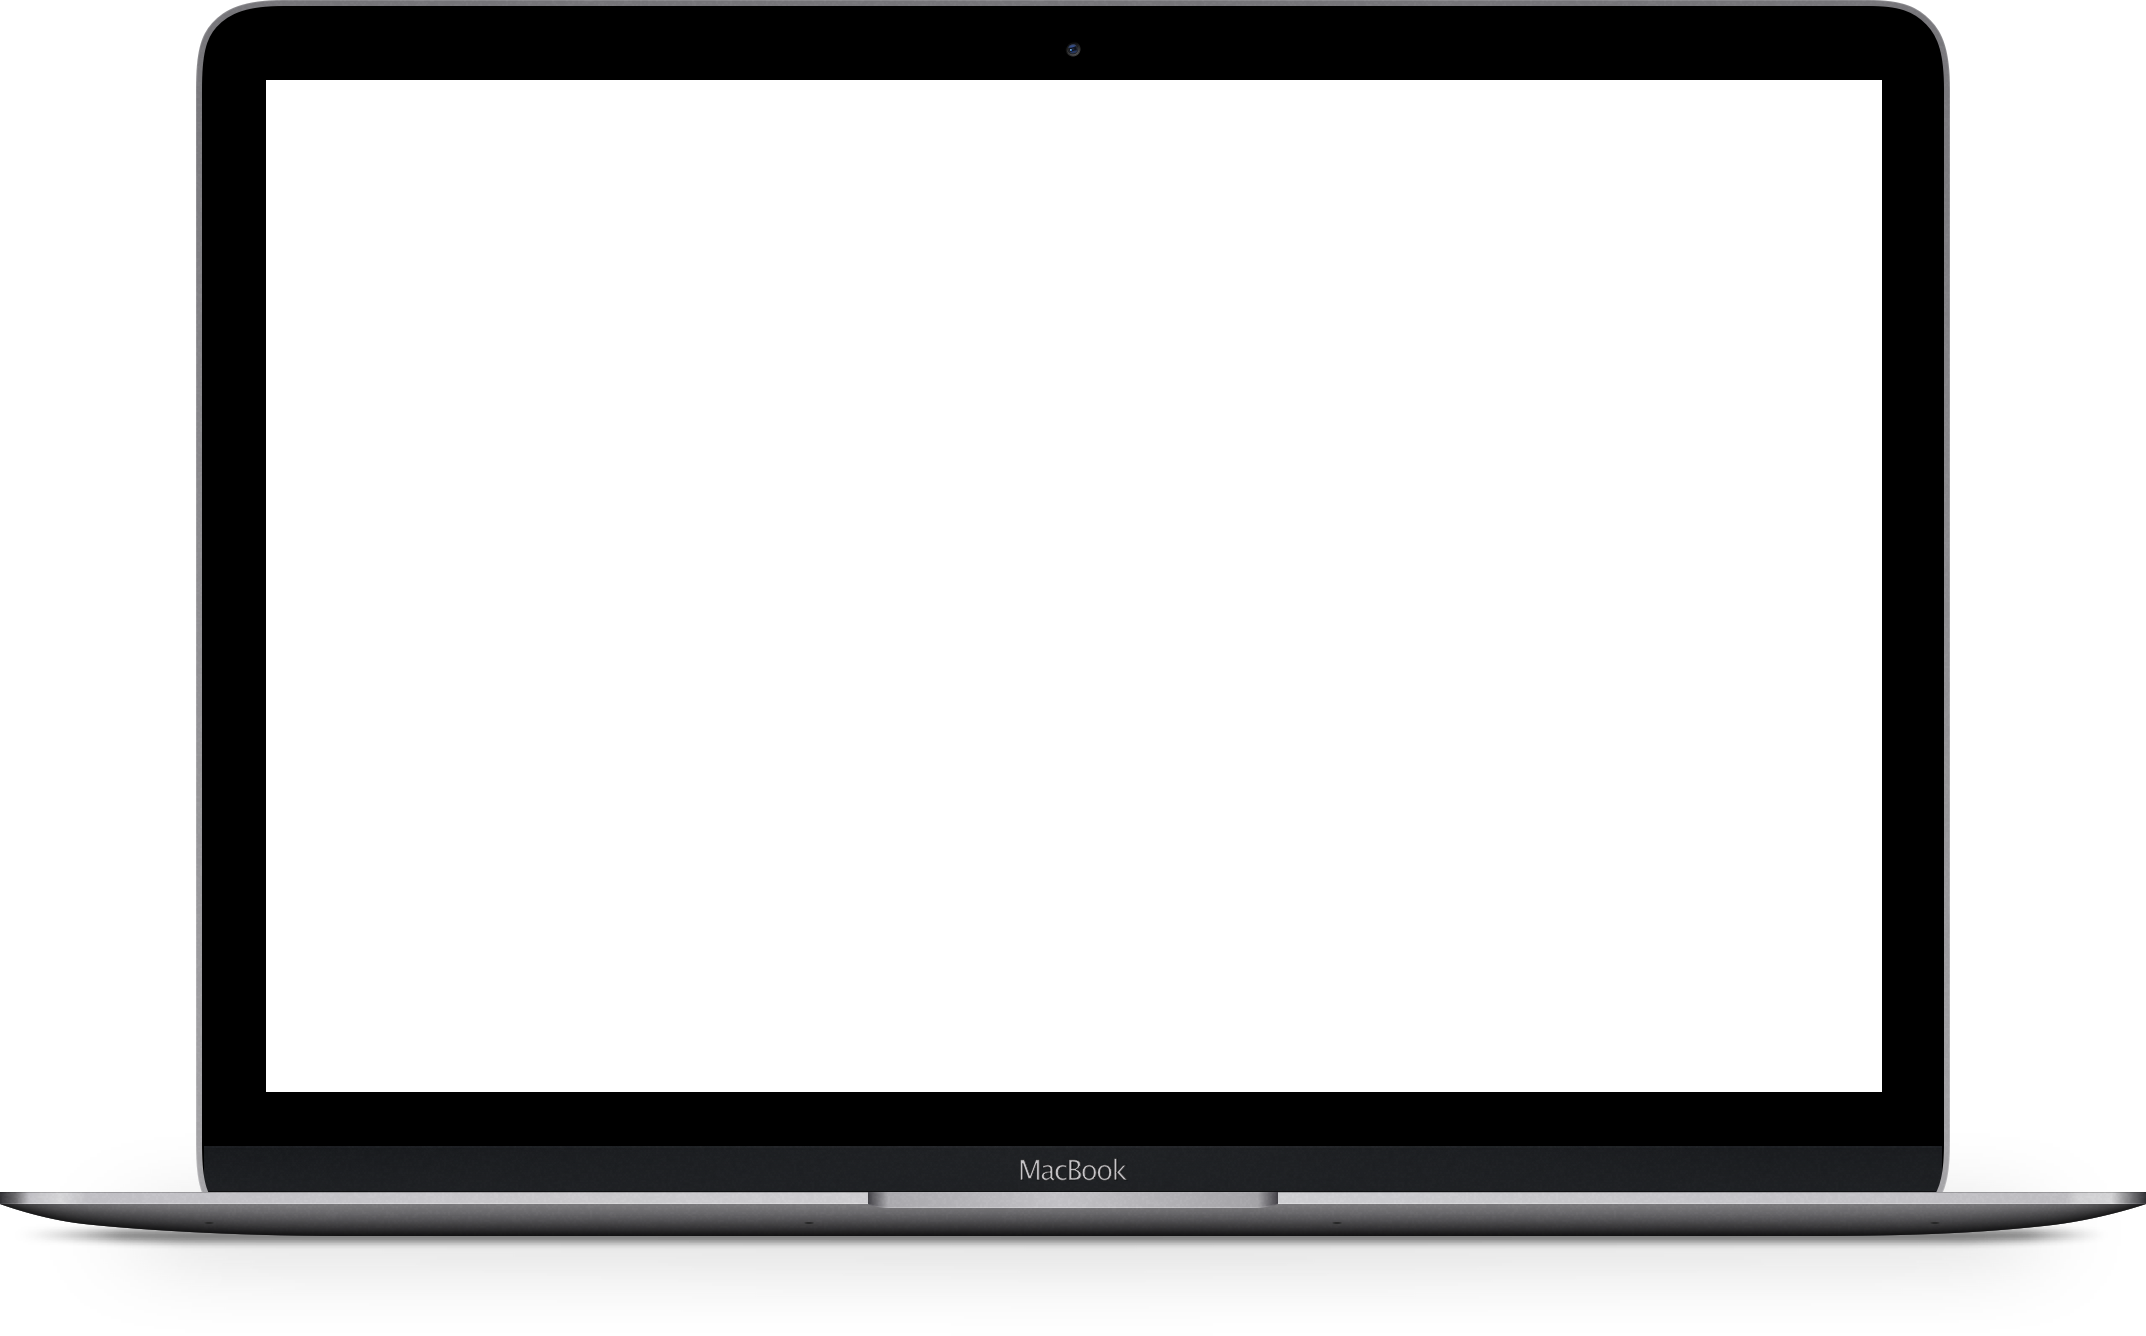 Image of a macbook pro you can scroll to preview the website designs